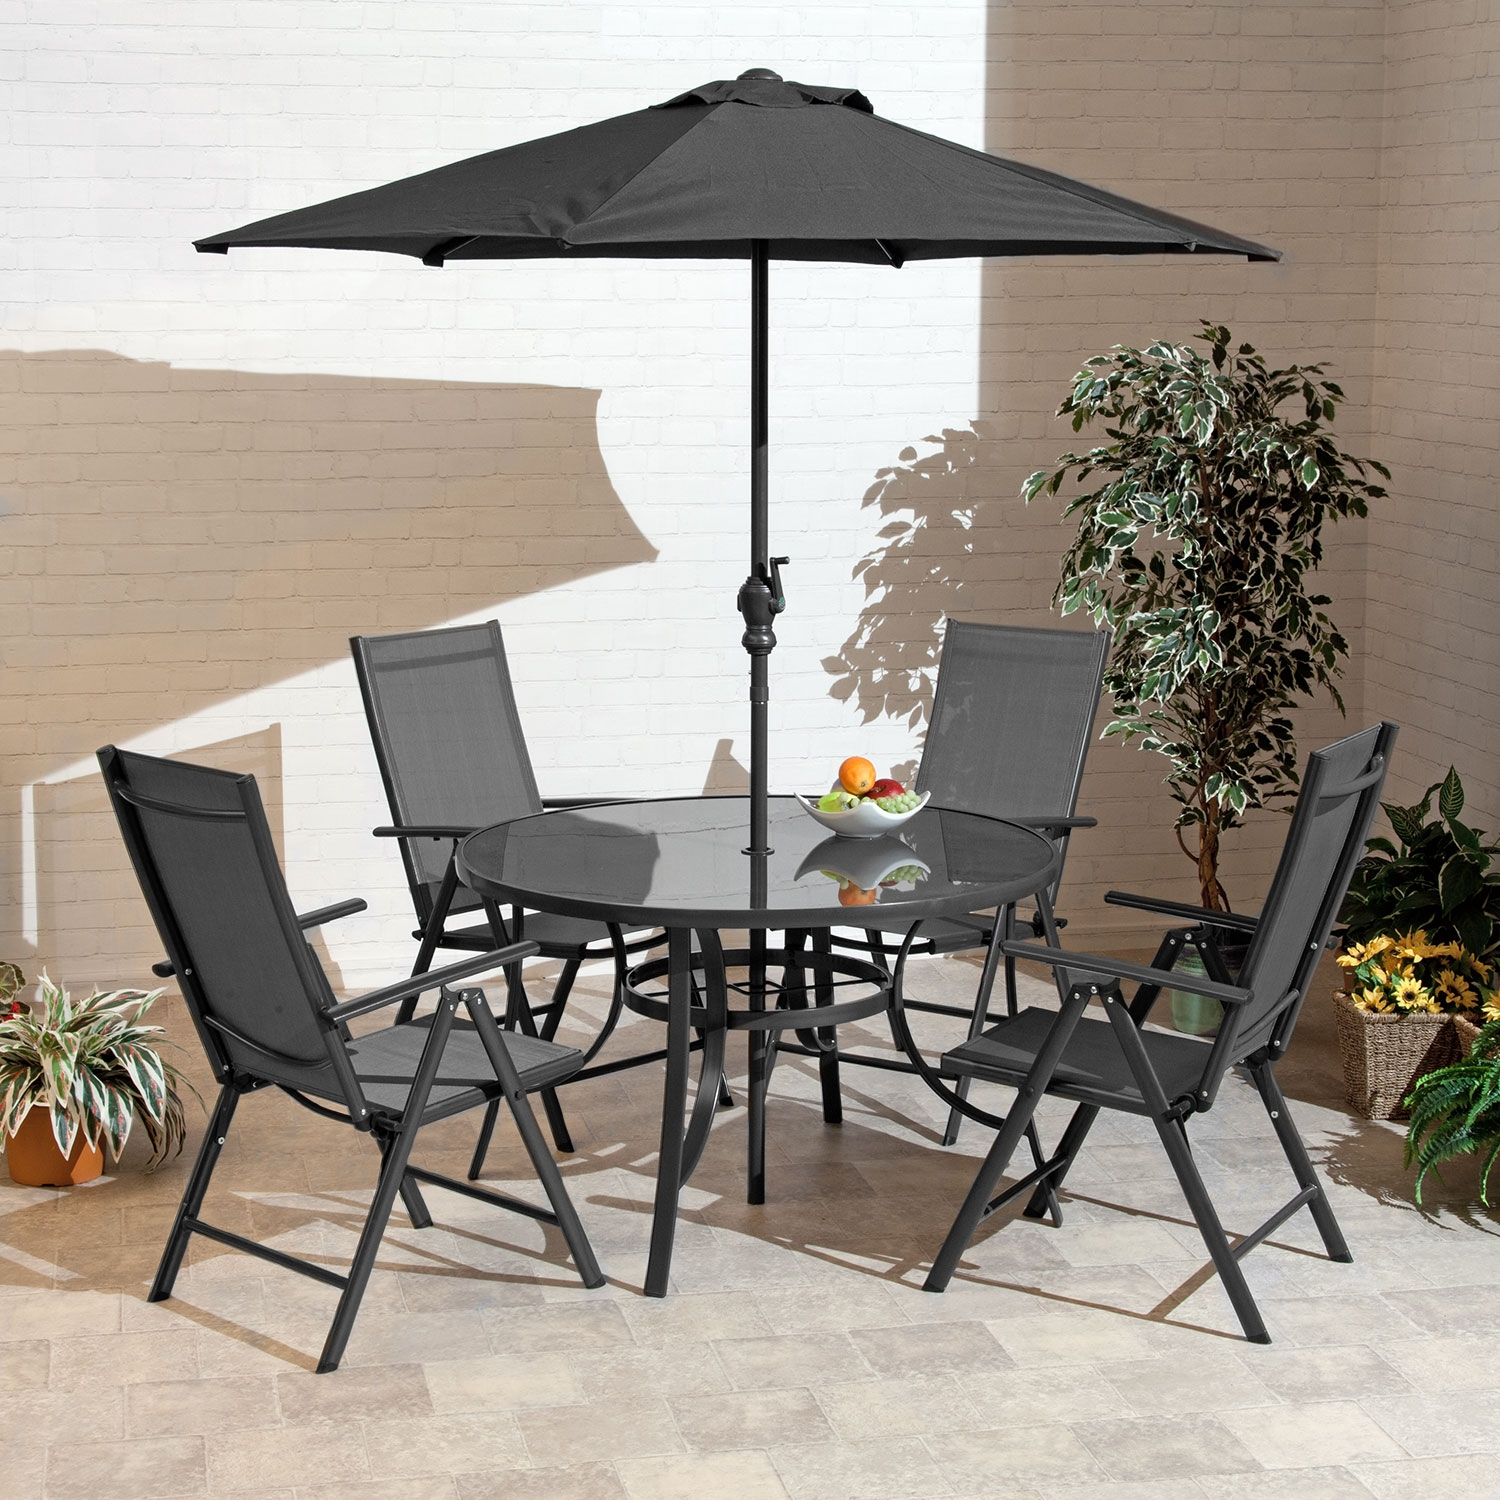 Image of 1.2m Santos Textelene 4 Seat Collection Charcoal